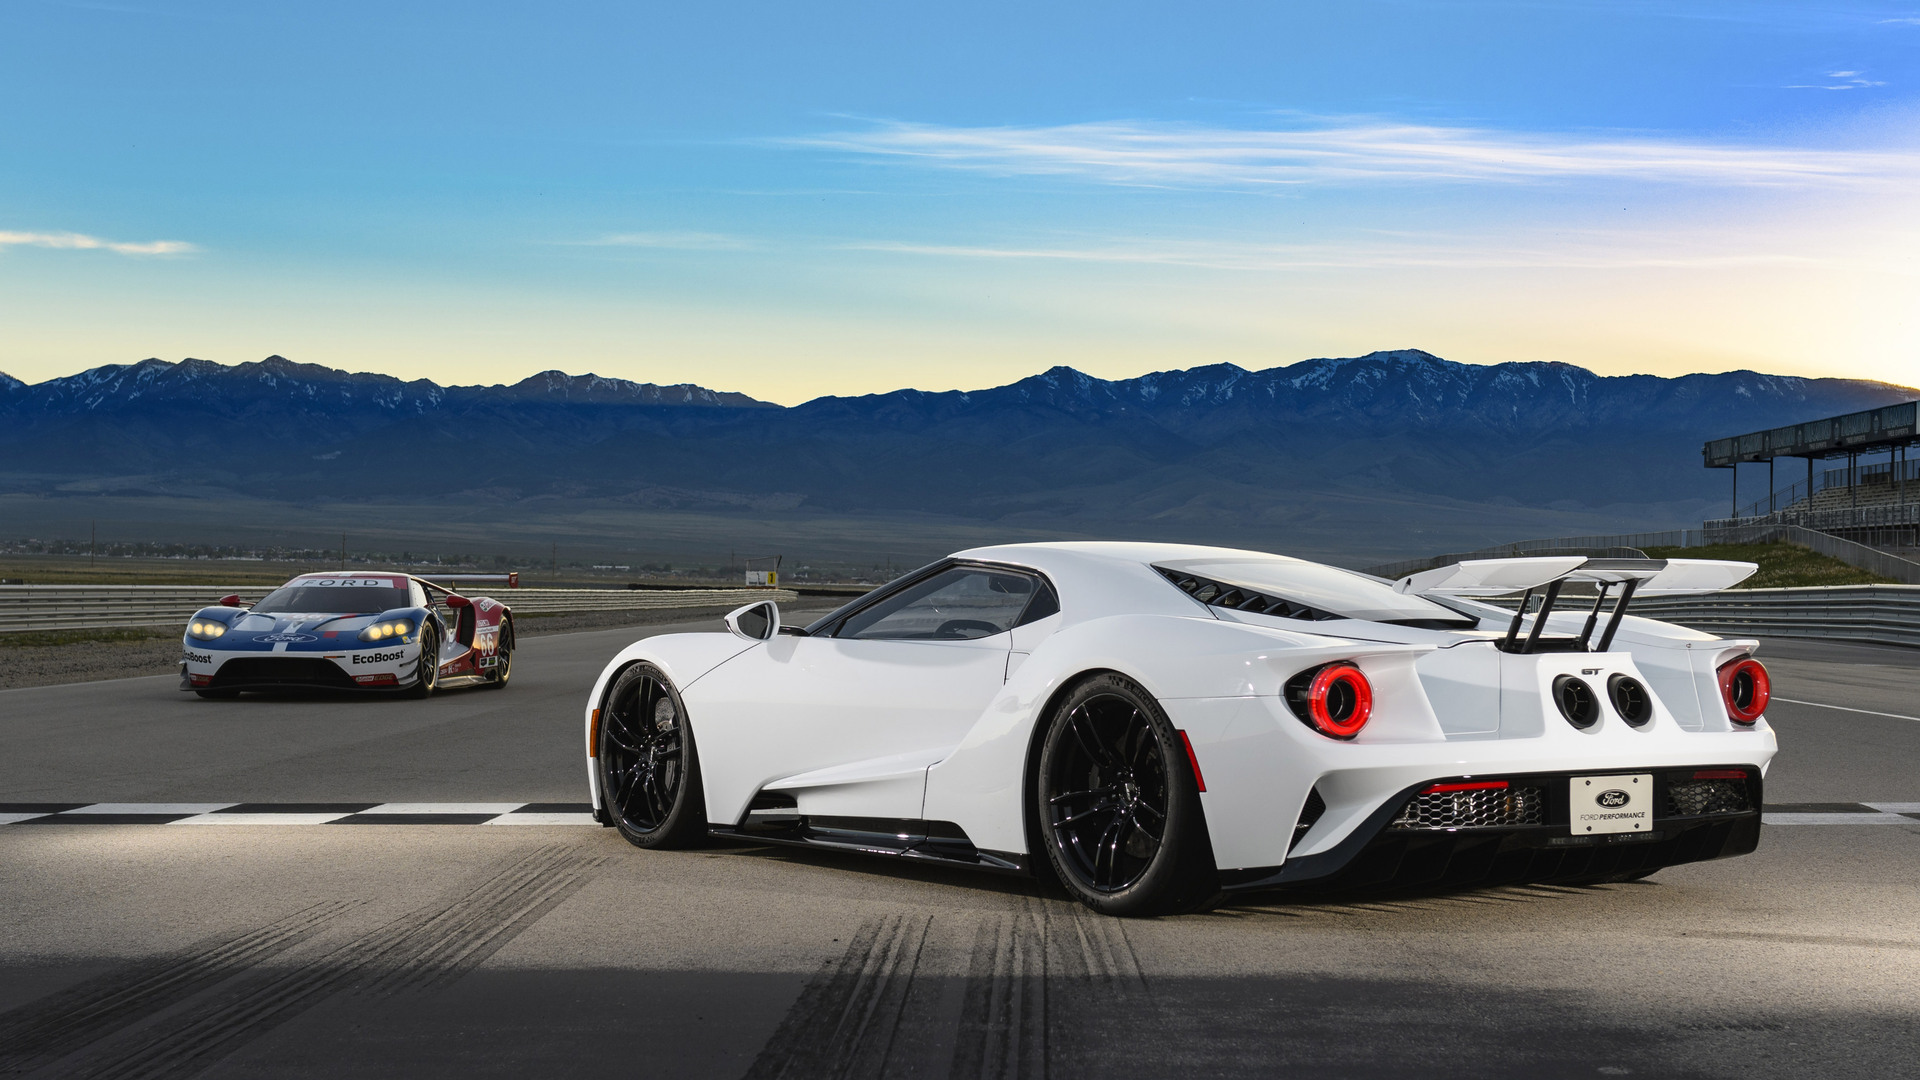 1920x1080 Ford GT 2017 4 Laptop Full HD 1080P HD 4k Wallpapers, Images, Backgrounds, Photos and